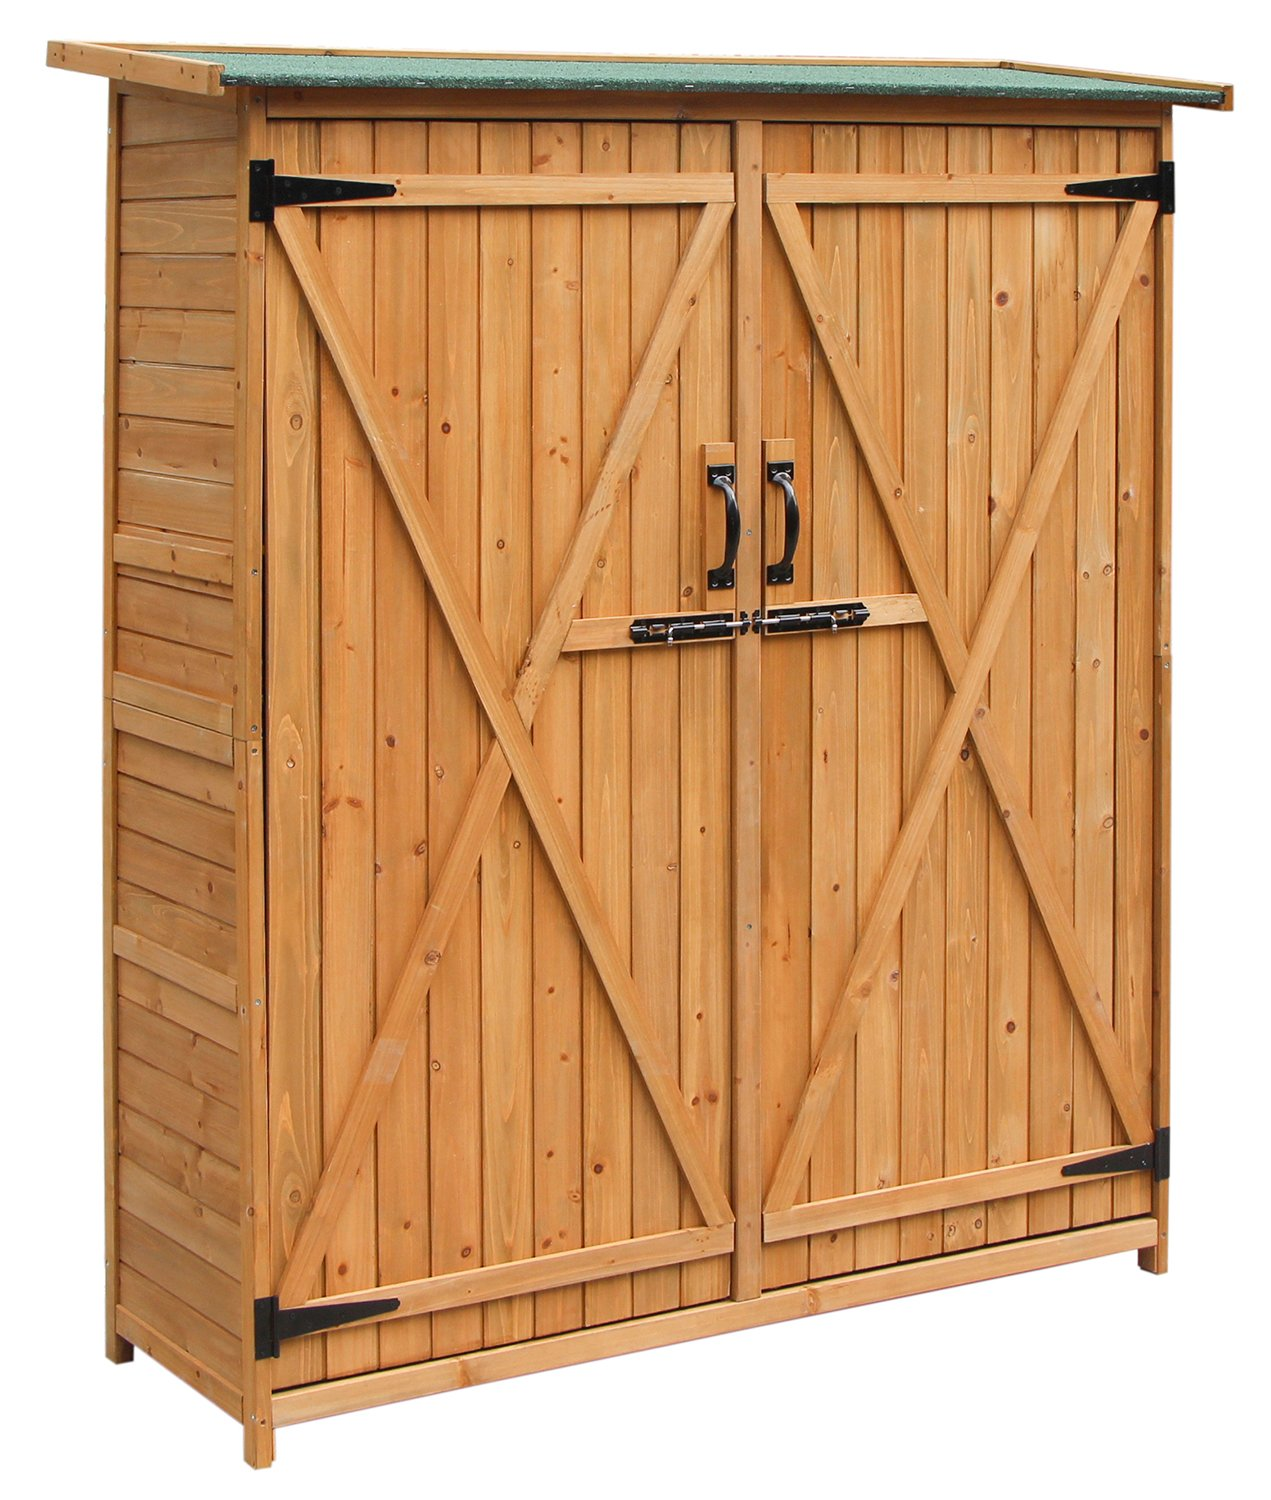 wooden storage sheds  38